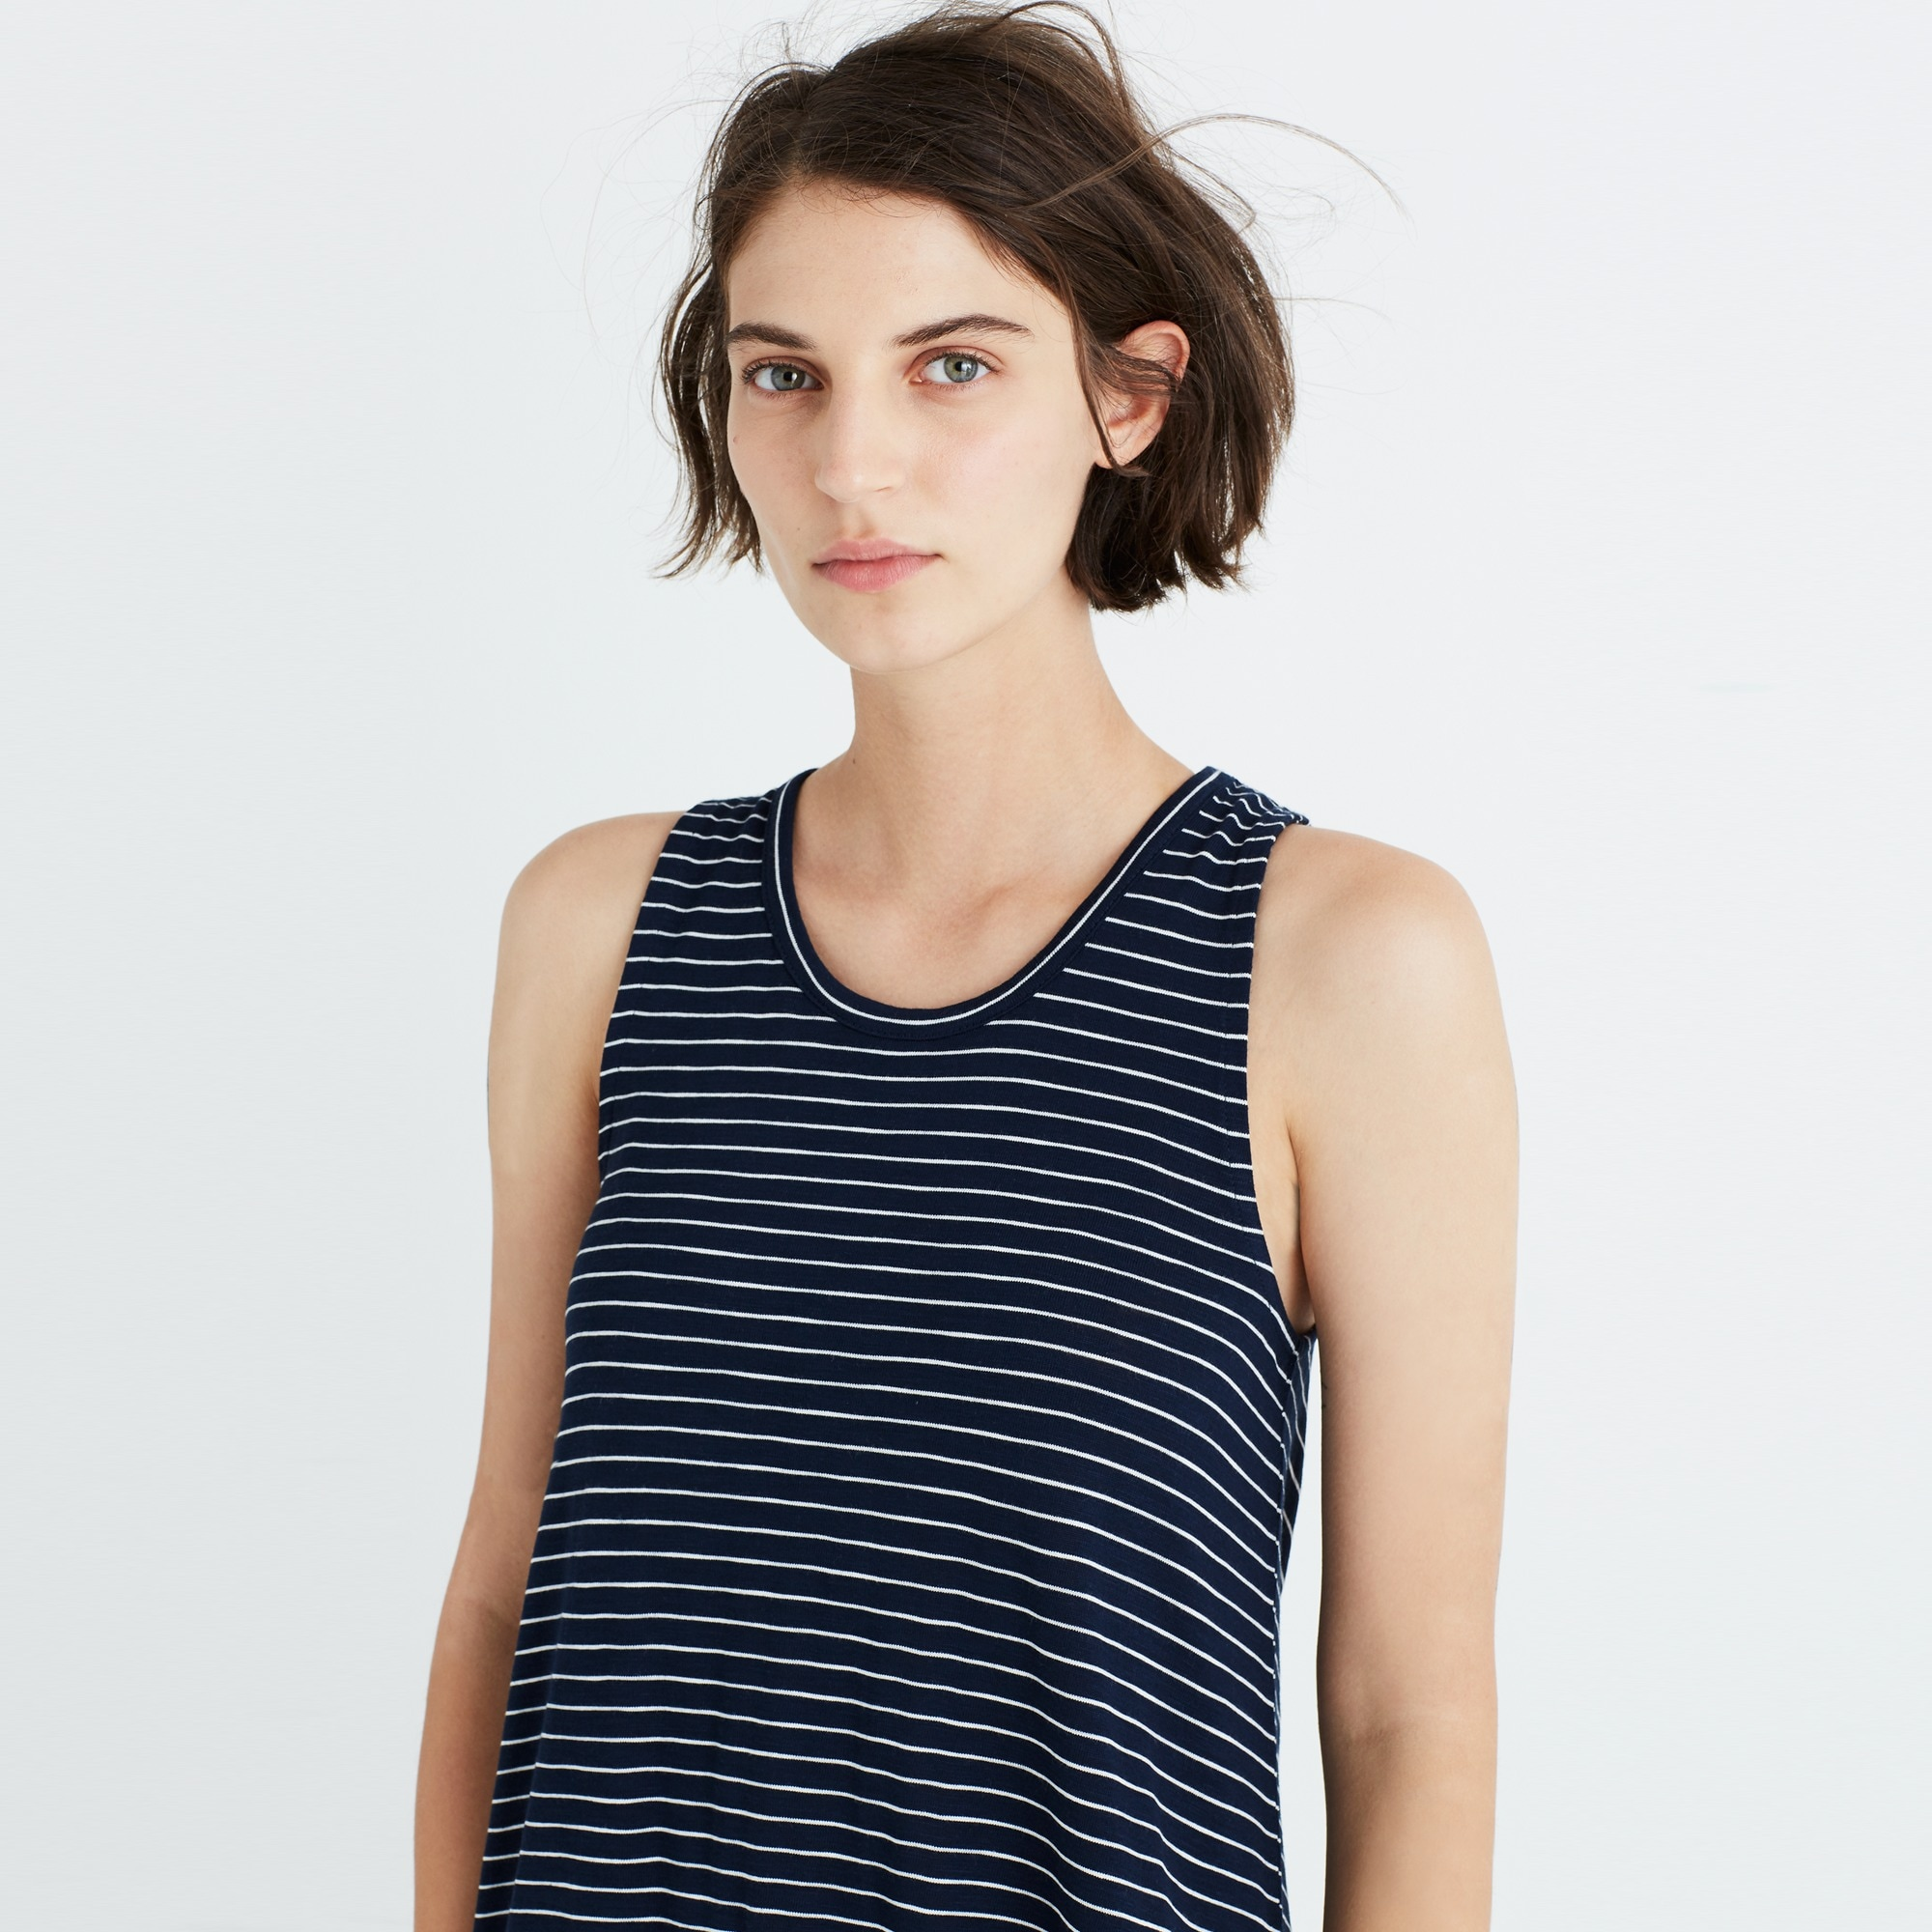 Madewell highpoint tank dress in chevron stripe women dresses c